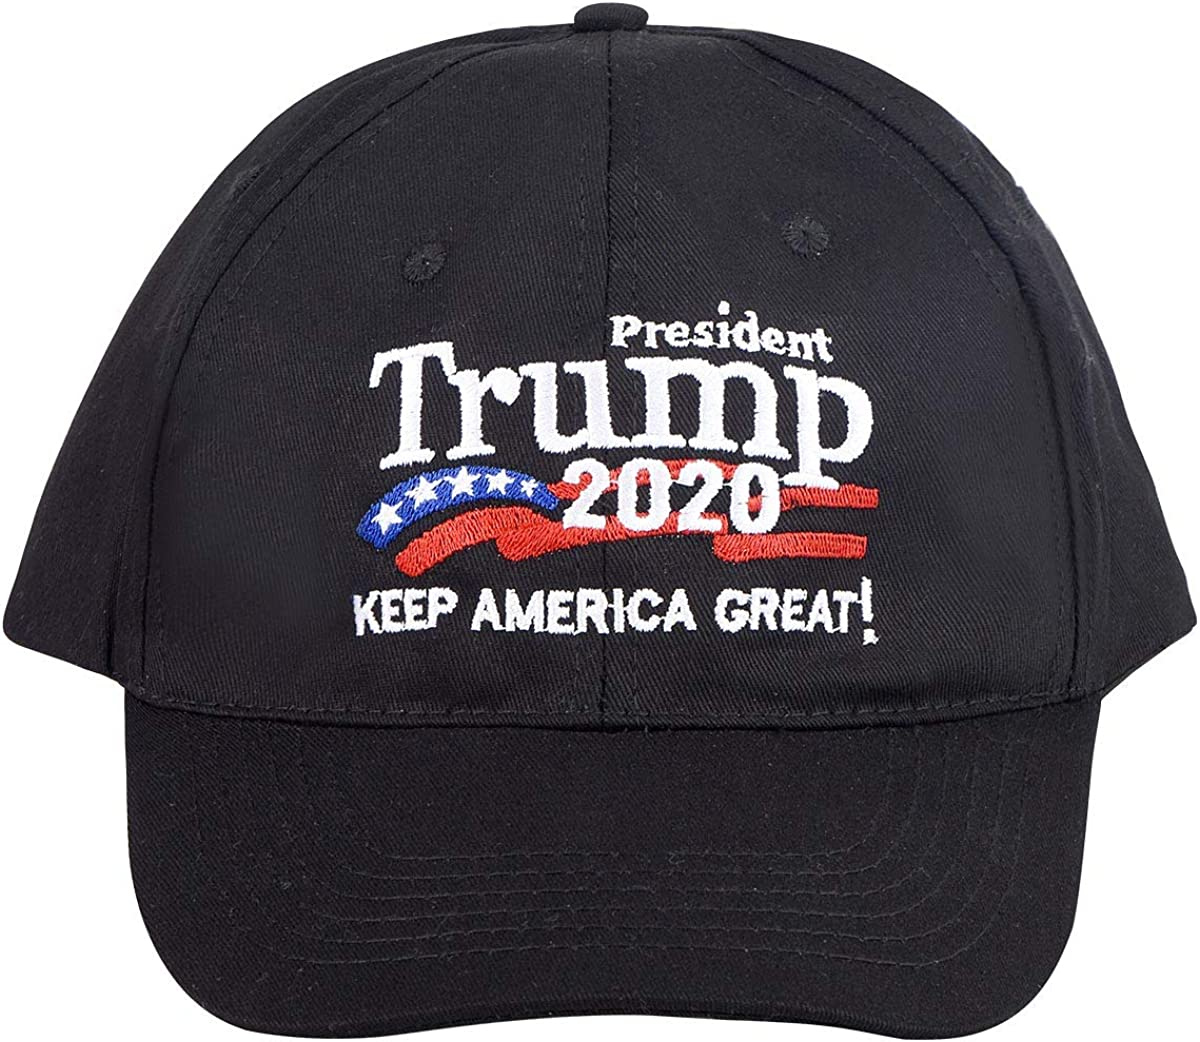 Keep America Great 2020 Letters Embroidered Solid Cotton Mesh Pro Cap